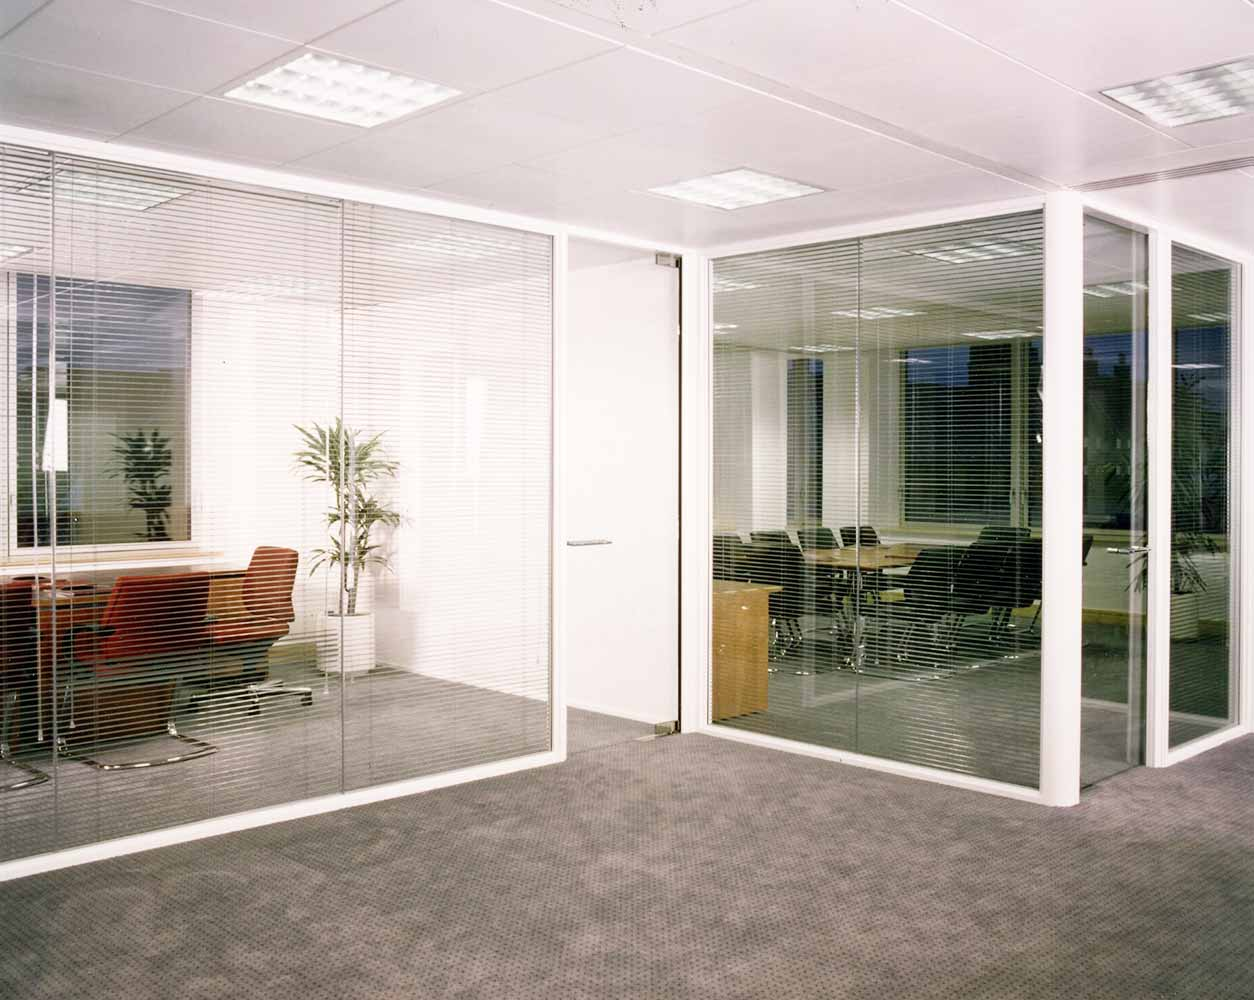 Komfort Kameo 75 with Polar glass Partitioning